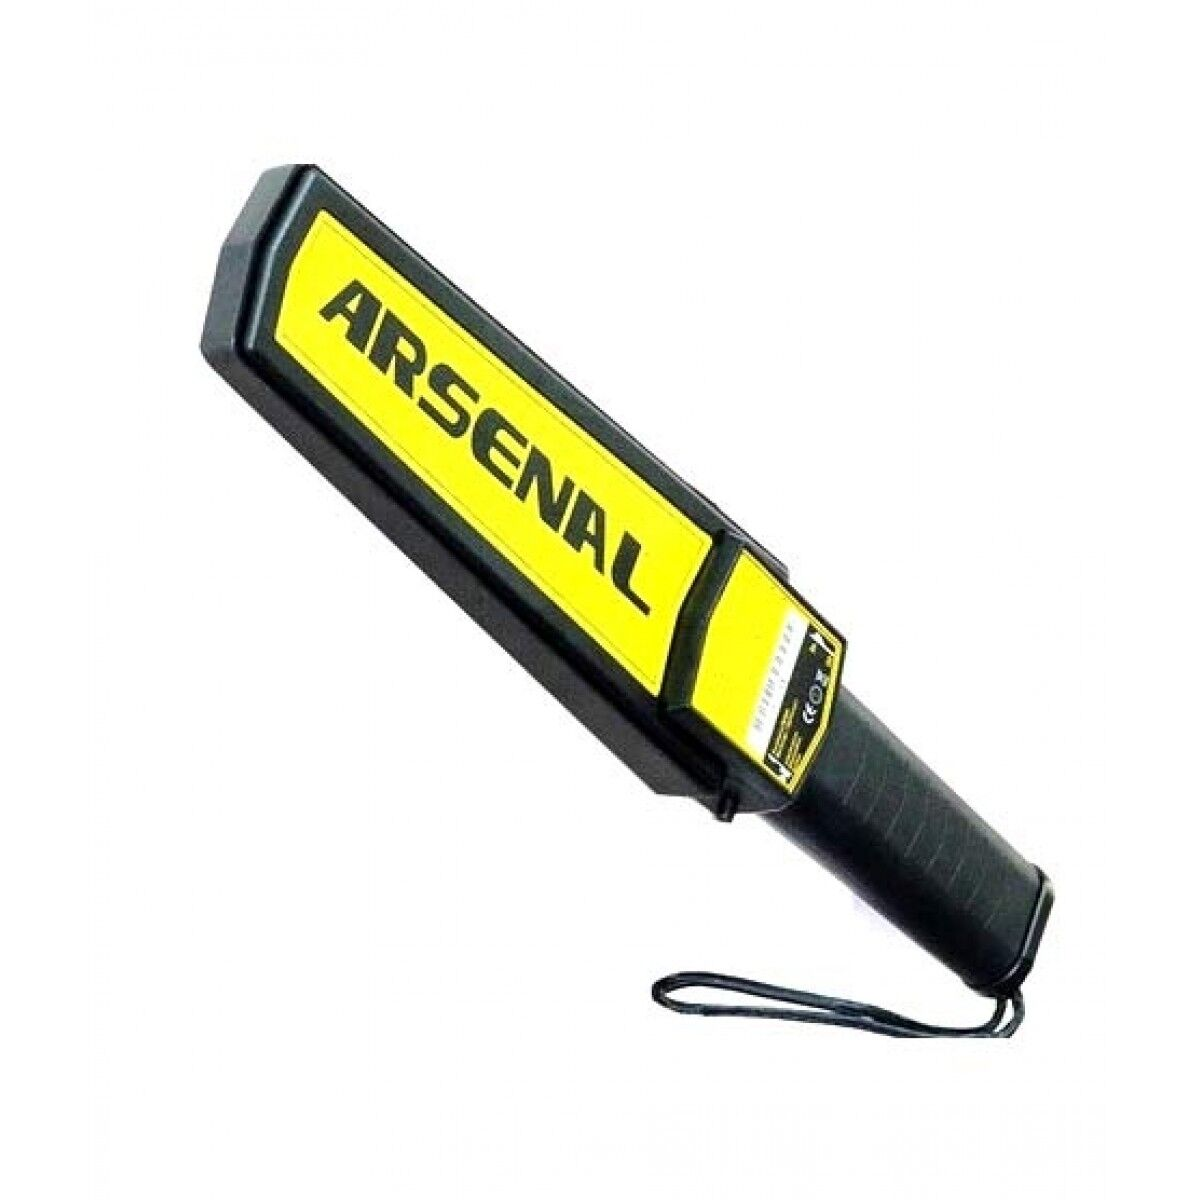 Arsenal Hand-Held Metal Detector For Security